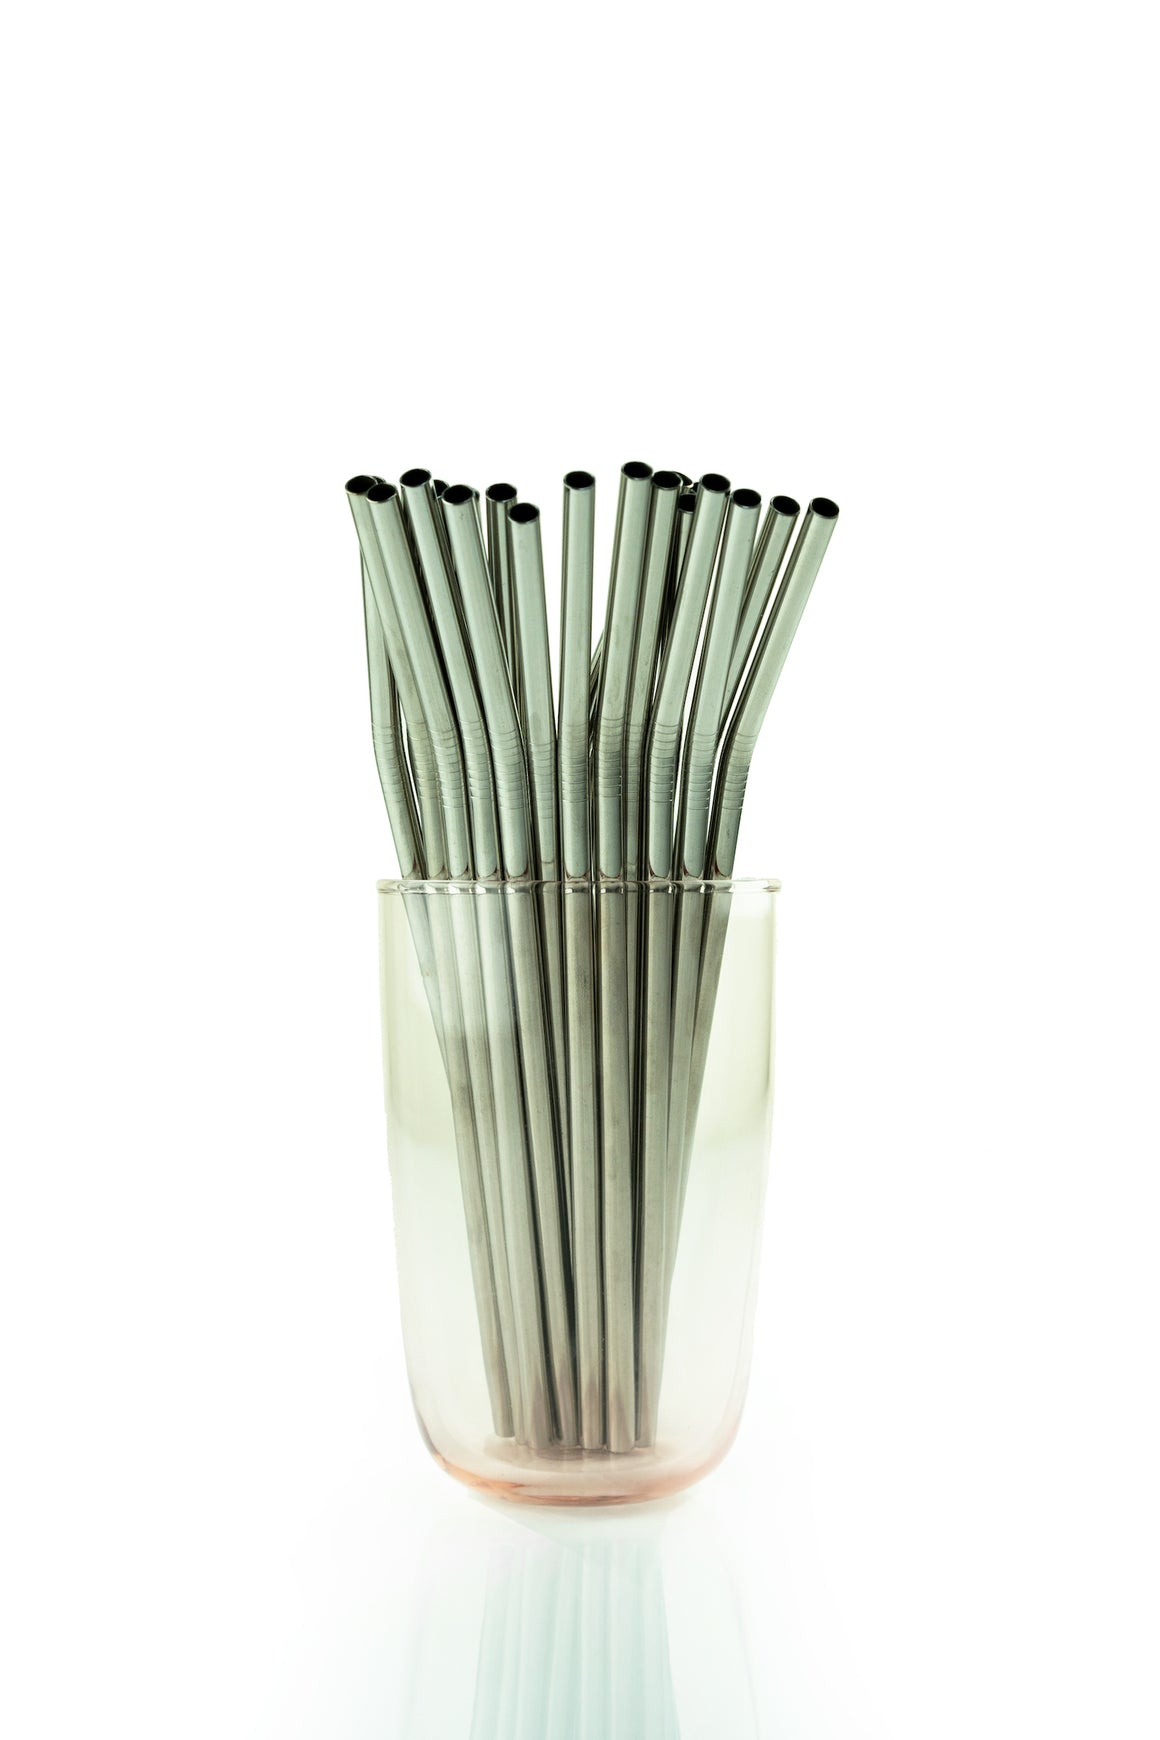 Stainless Steel Reusable Straw (Bent)